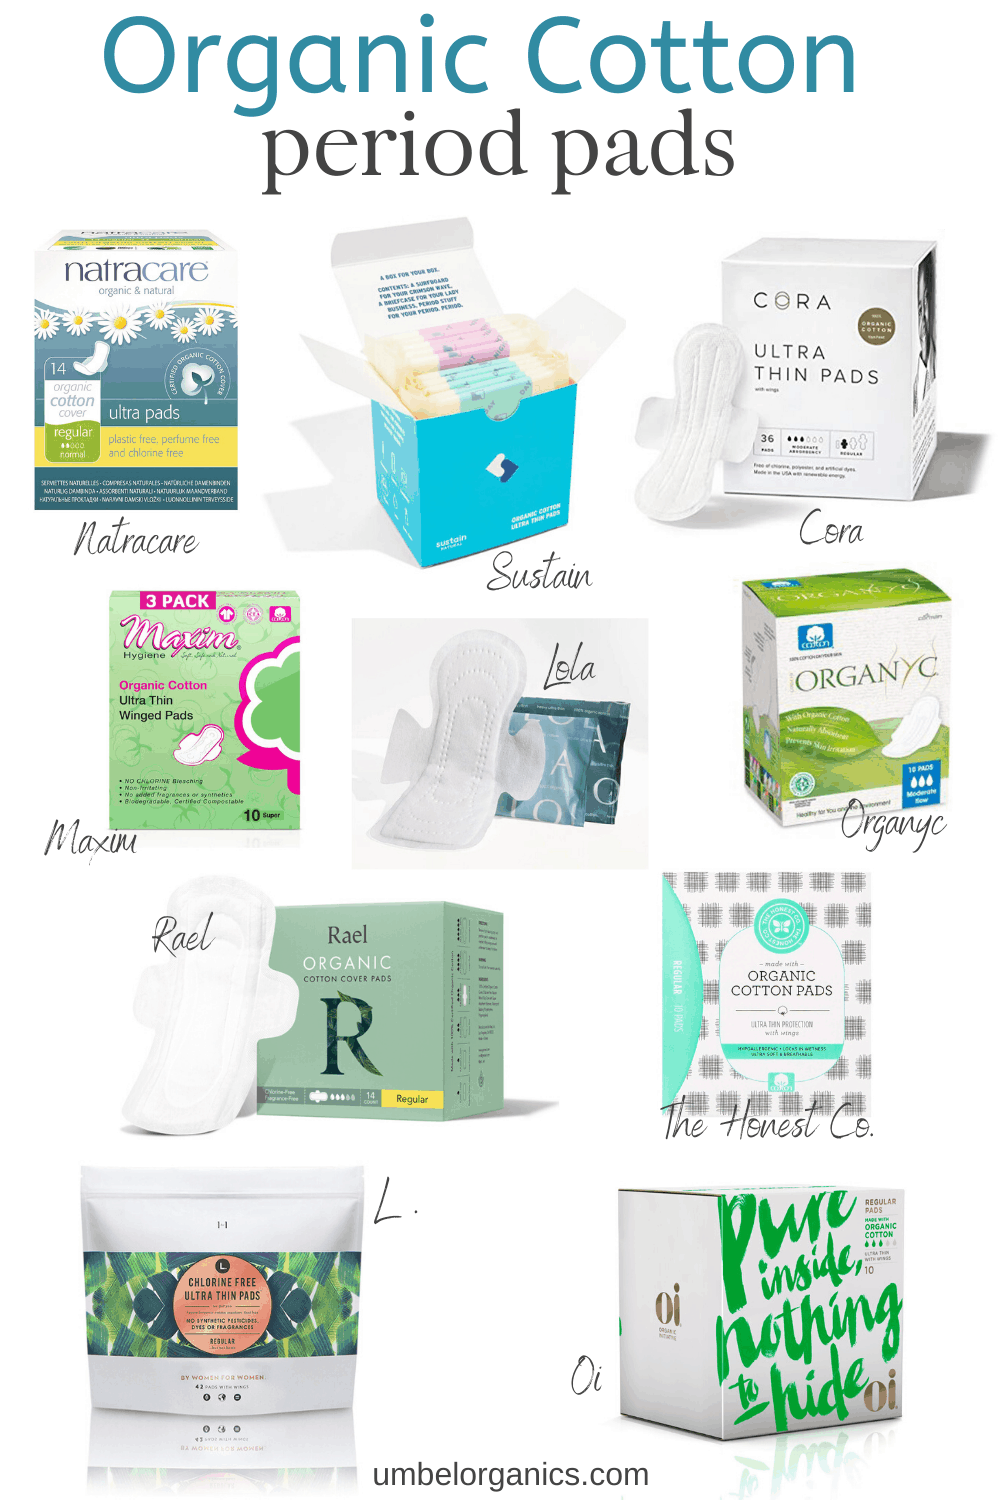 10 brands of organic cotton period pads